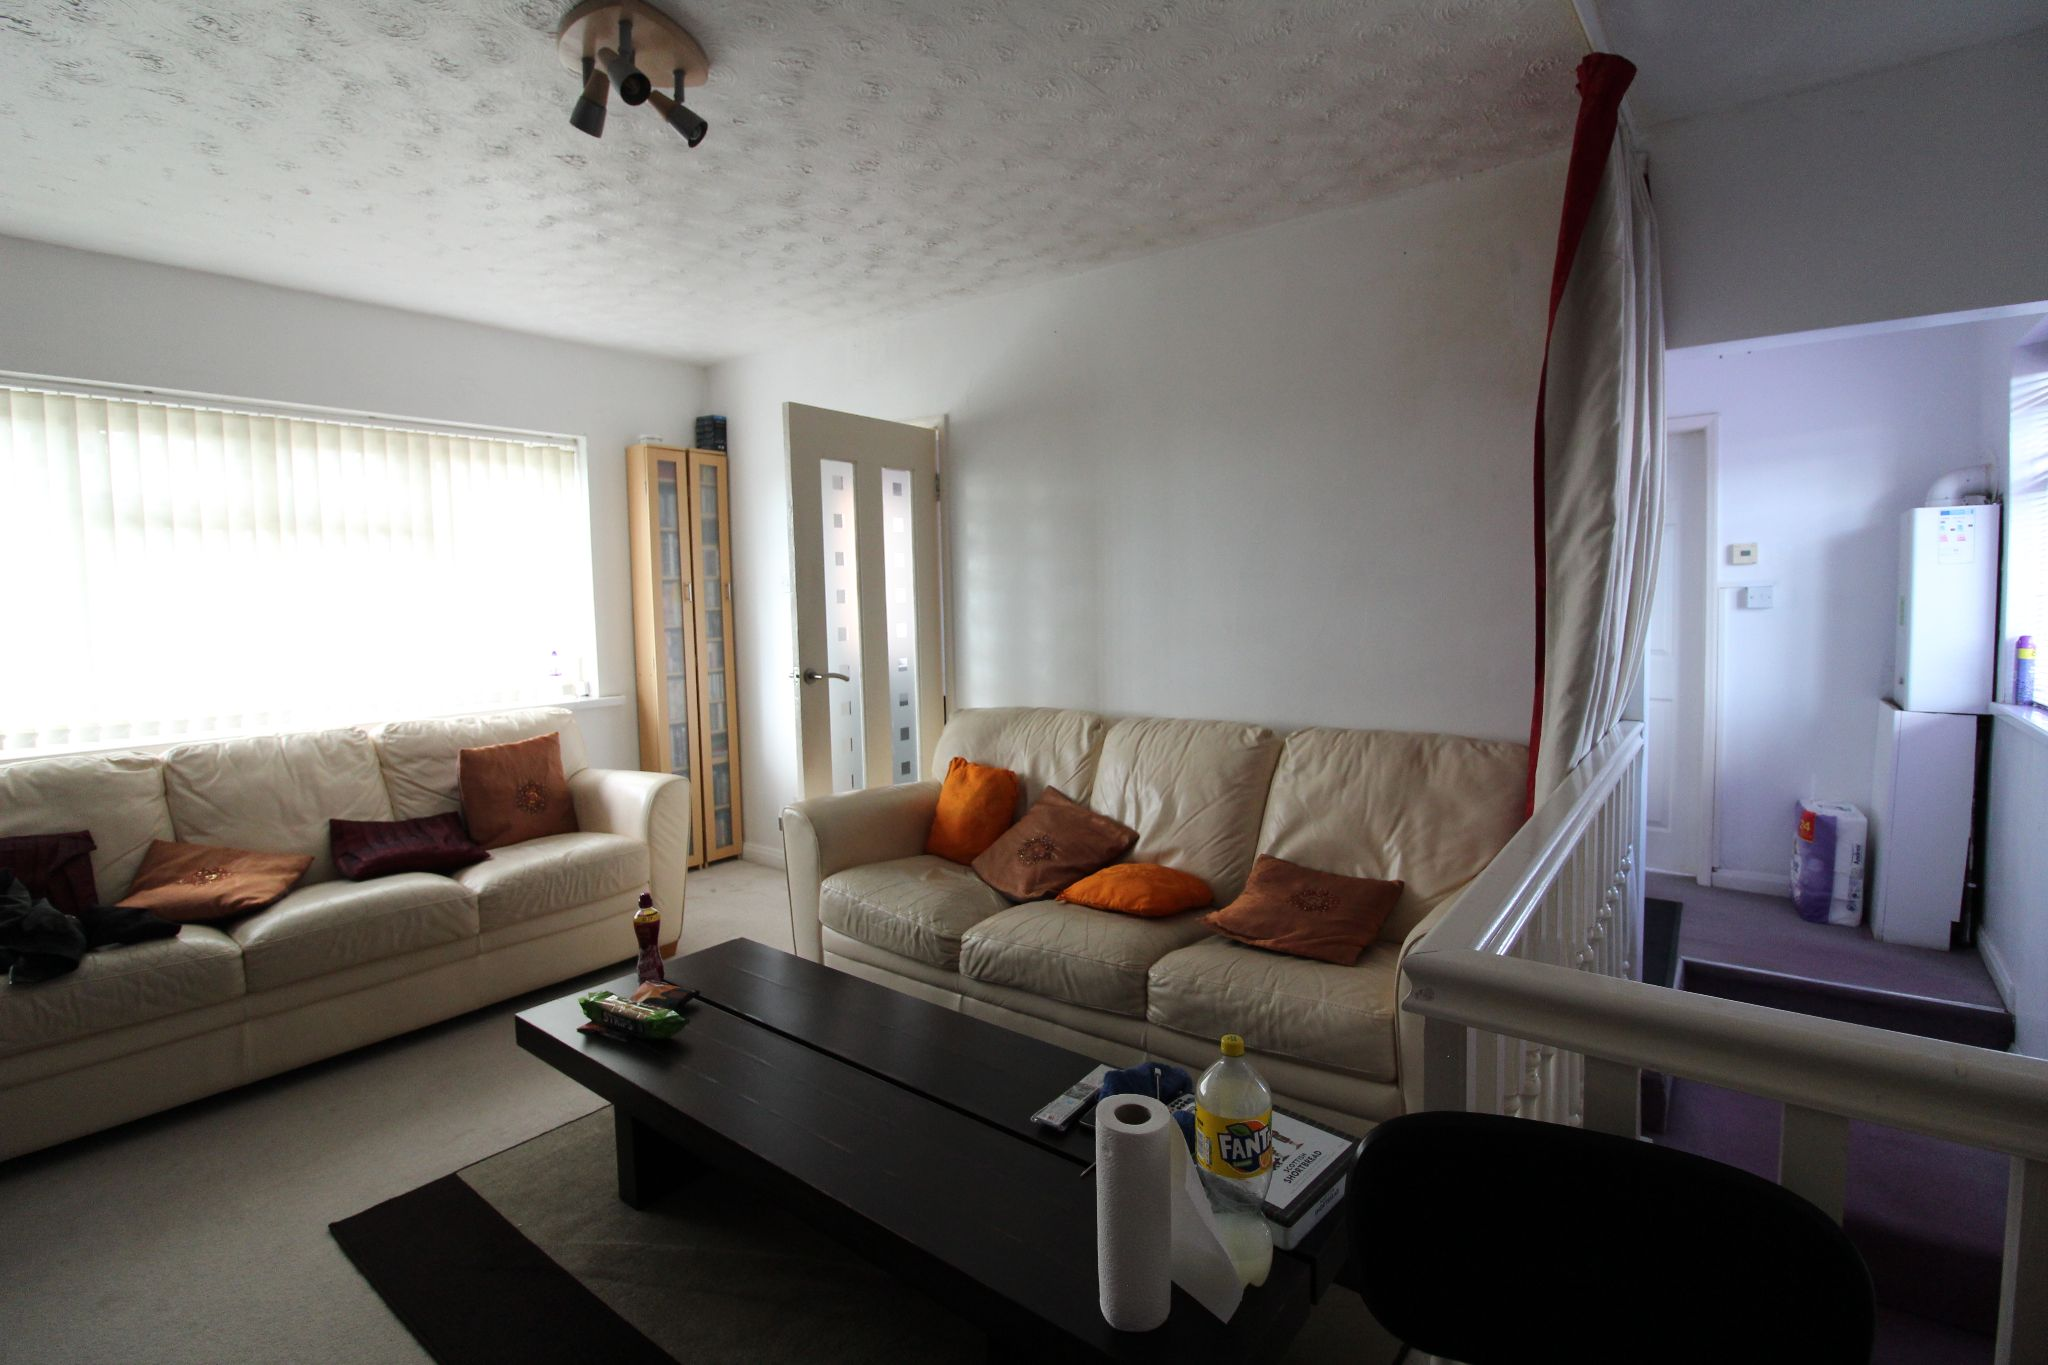 3 bedroom detached house For Sale in Durham - Photograph 14.